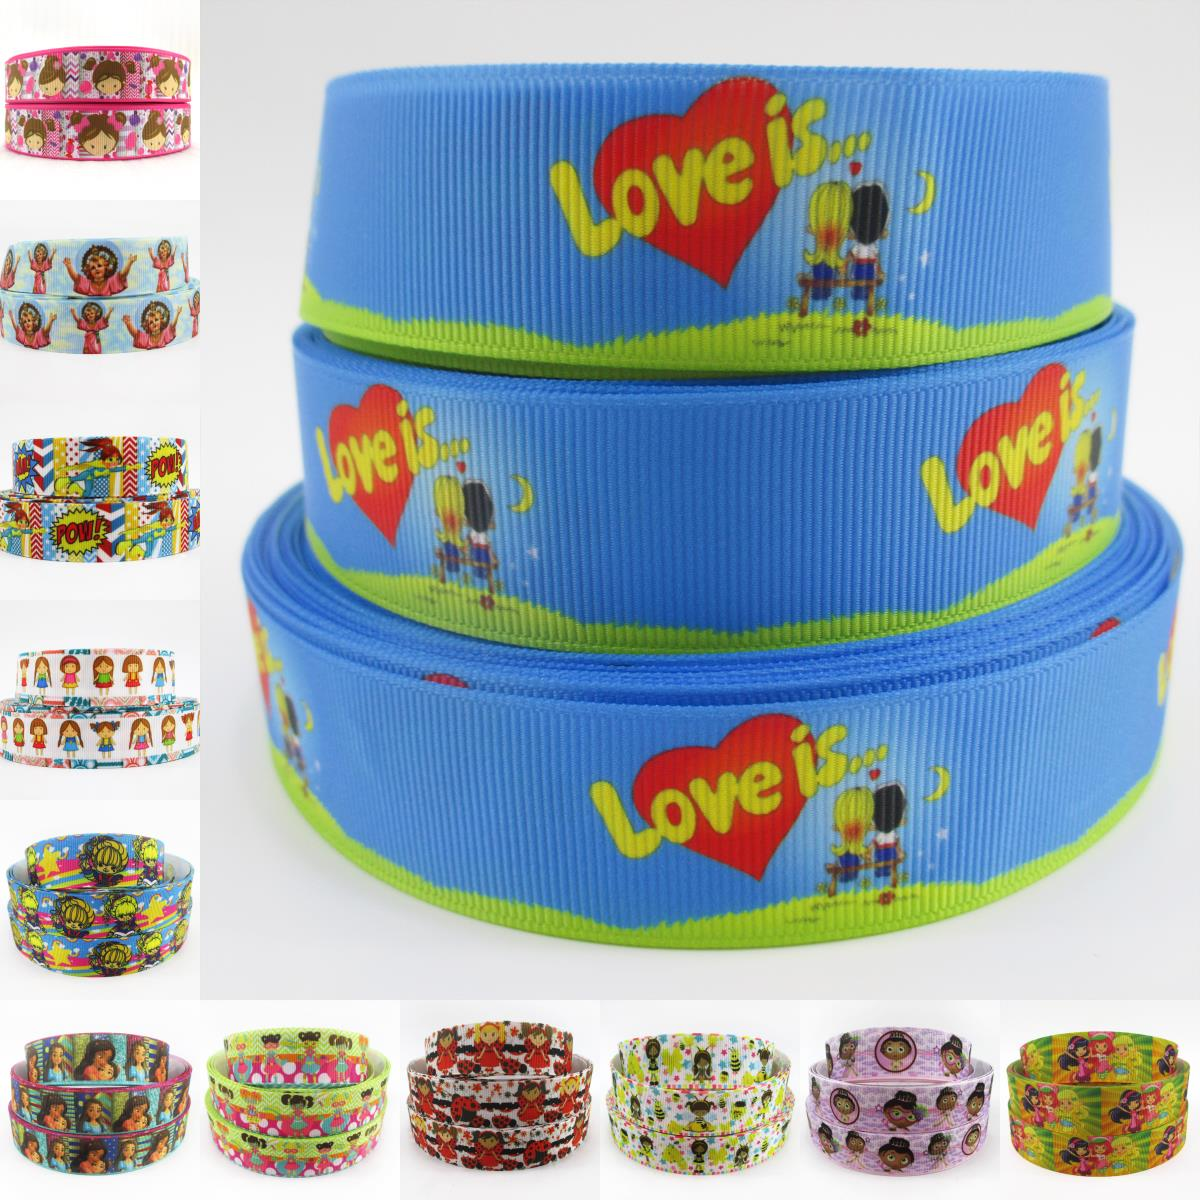 1 25mm boy grils cartoon printed polyester ribbon 50 yards, DIY handmade materials, wedding gift wrap,50Yc1601